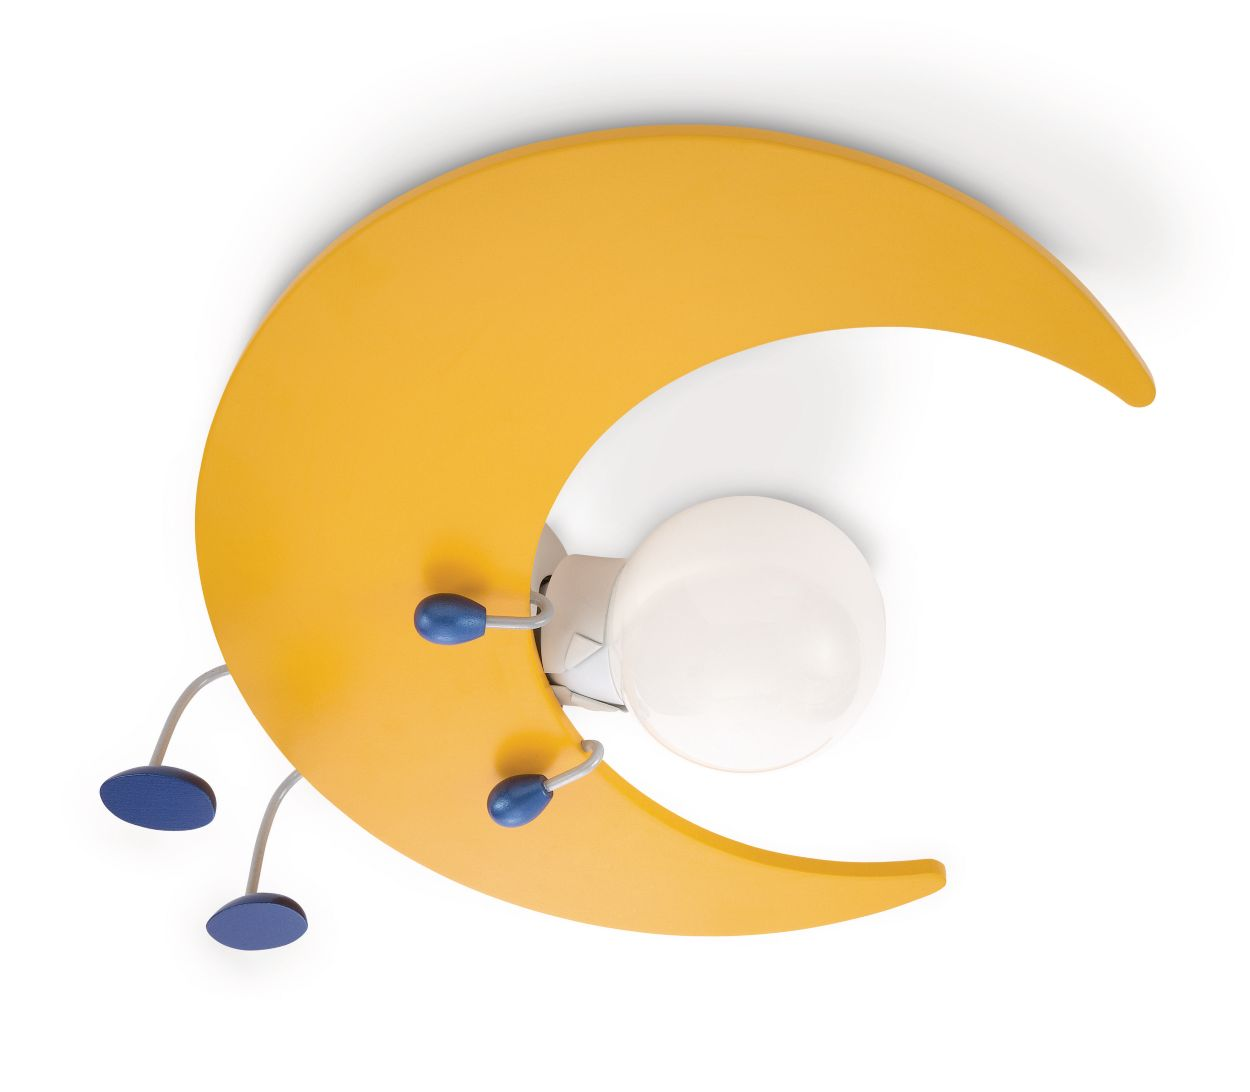 Camera Soffitto Blu: Flamma lampadari: vendita online di applique ...